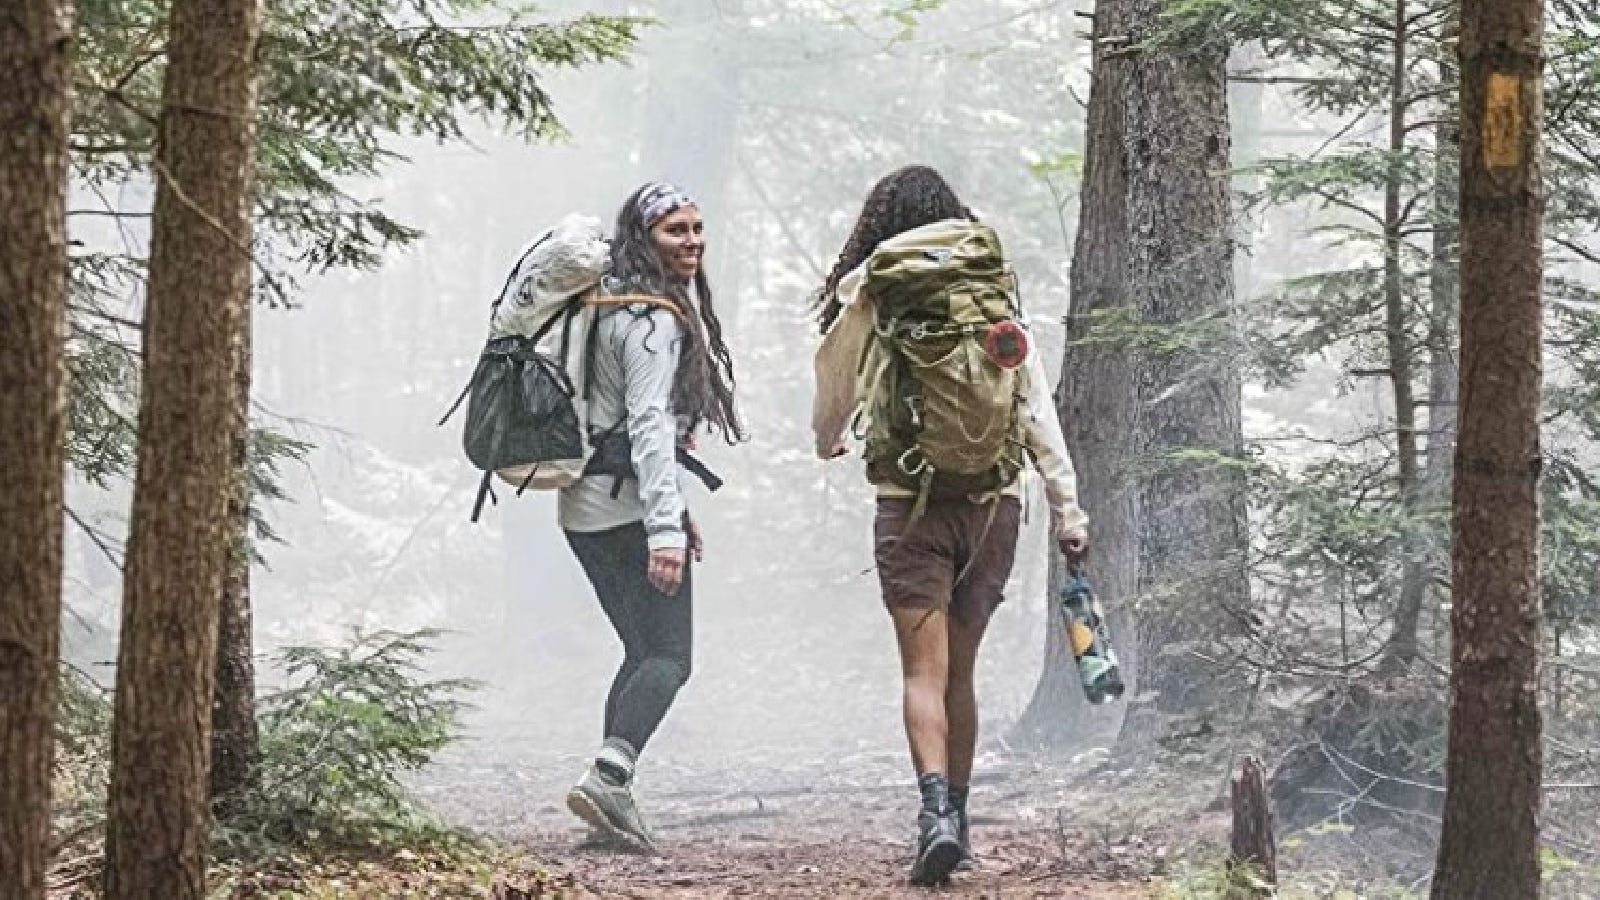 Two girls out hiking along a dense trail wearing their comfortable and sturdy Merrell hiking boots.